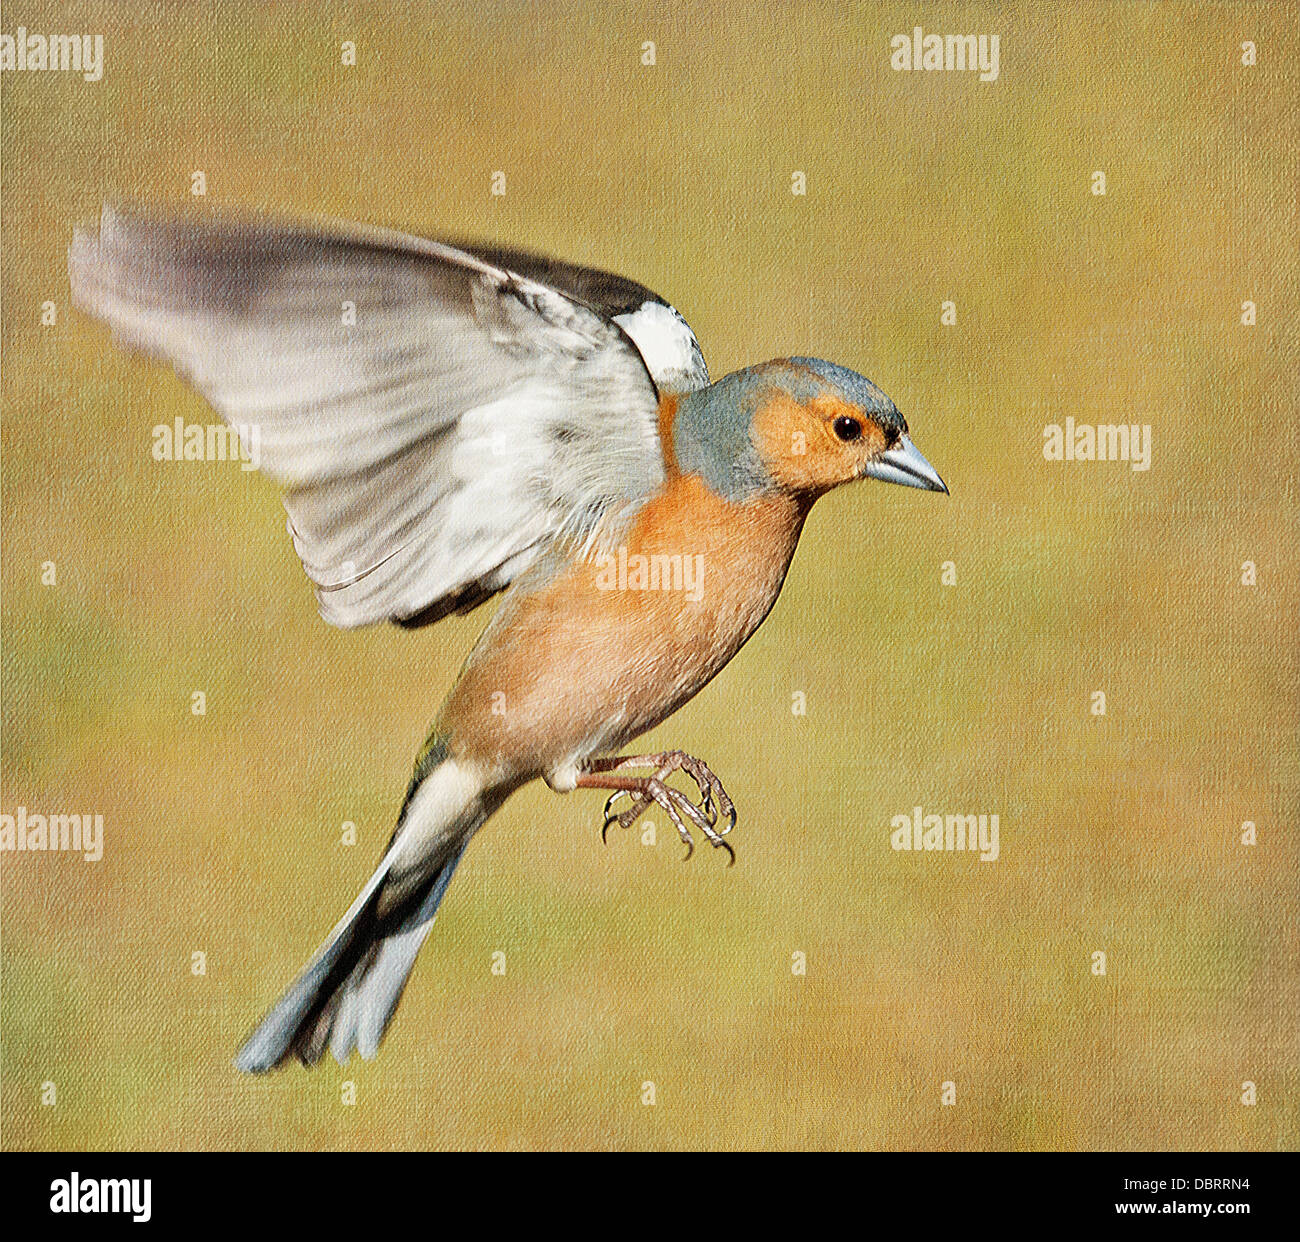 Textured male Chaffinch in flight - Stock Image